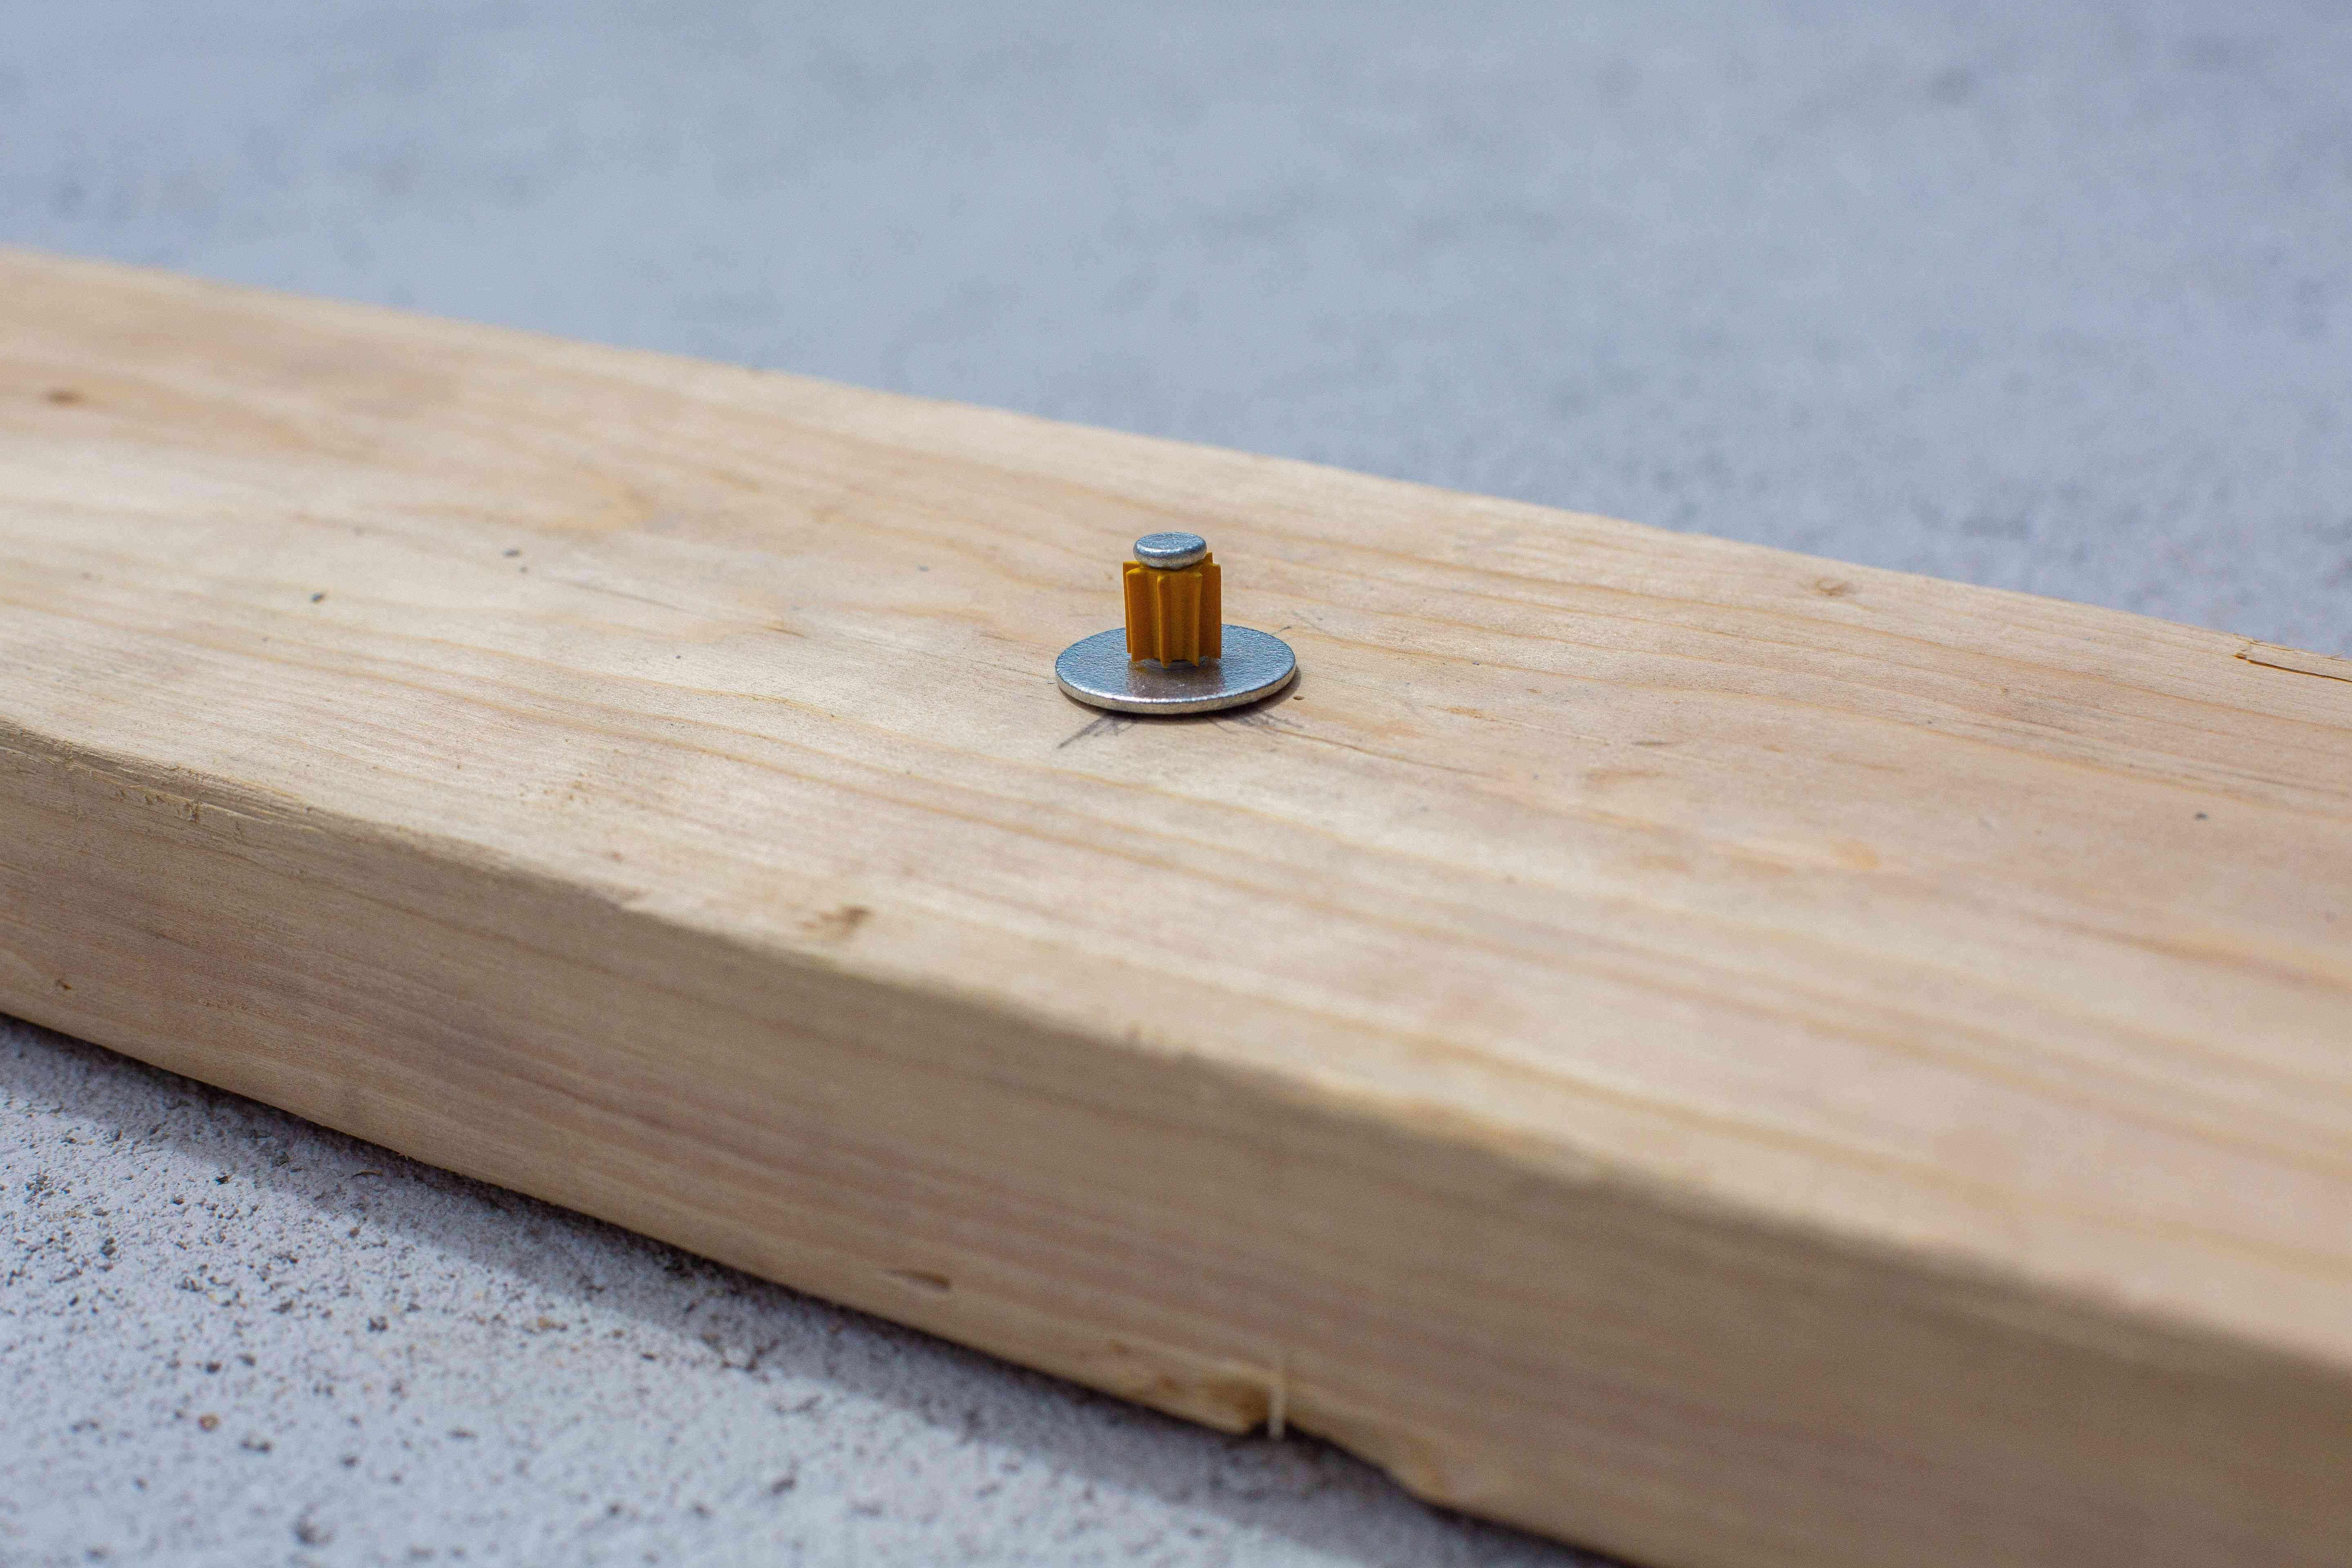 Nail above wooden board surface with spacer closeup